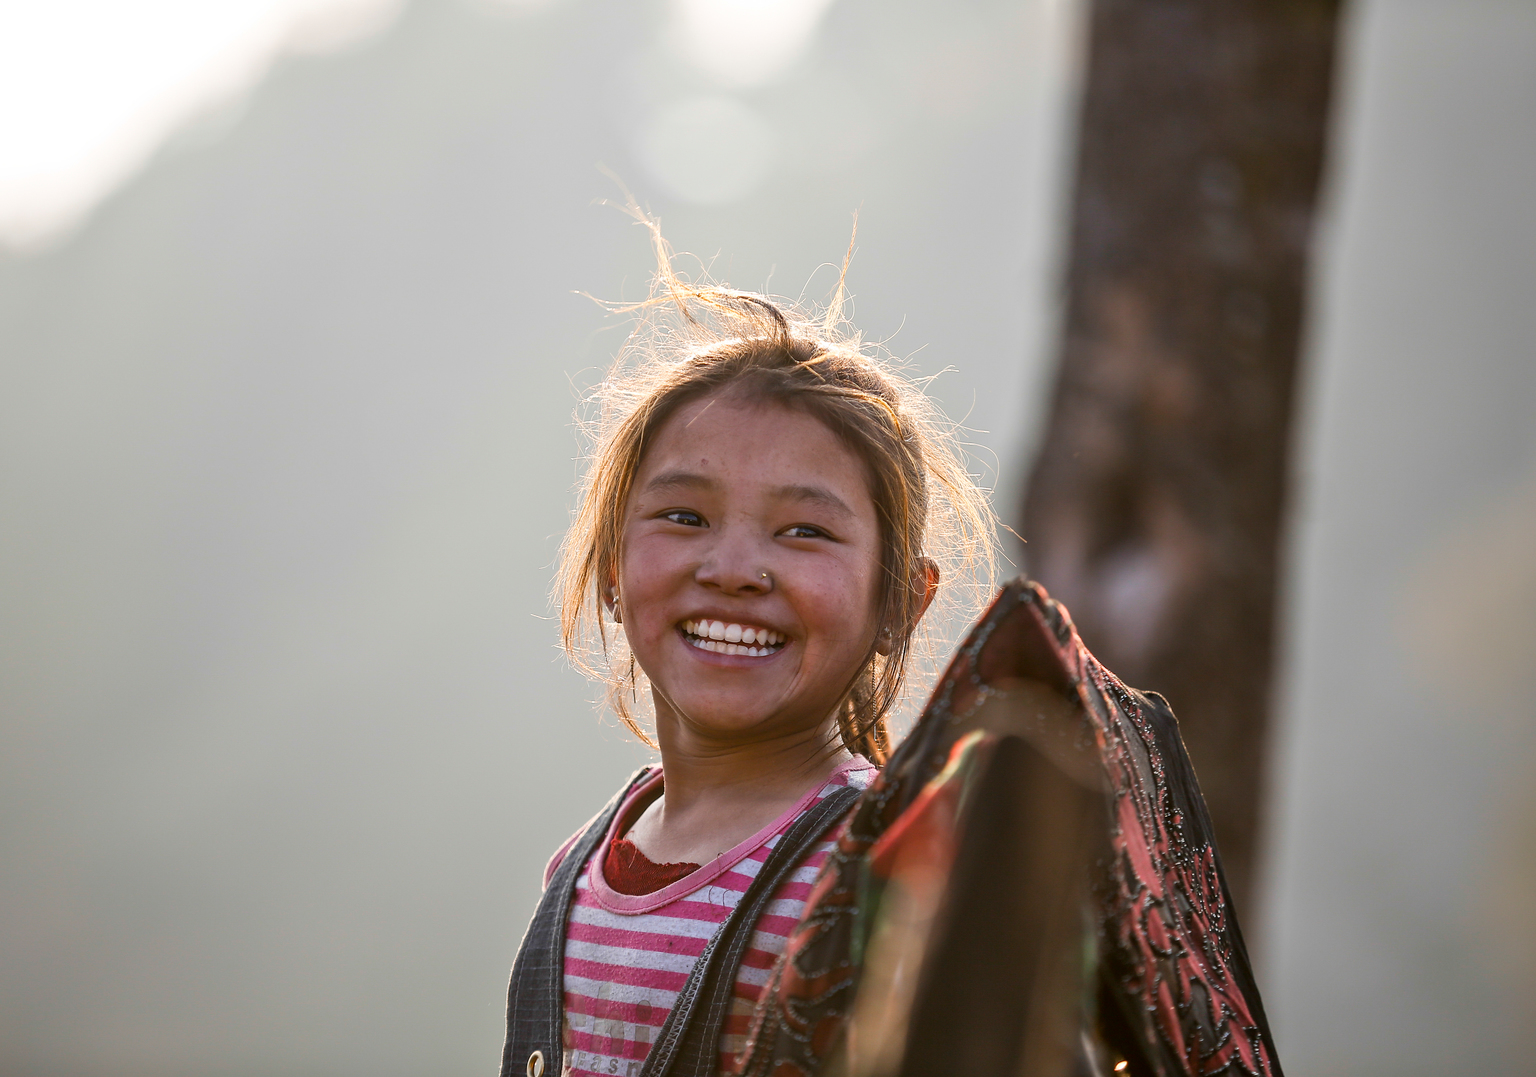 A girl in Nepal smiles past a UNICEF photographer in Barpak, Nepal in January 2016. 1400 homes were destroyed in her village in the 2015 earthquakes. Ethan and the New Zealand comms team were able to document and cover some of Nepal's recovery in 2015 (© UNICEF/UN017159/Shrestha)